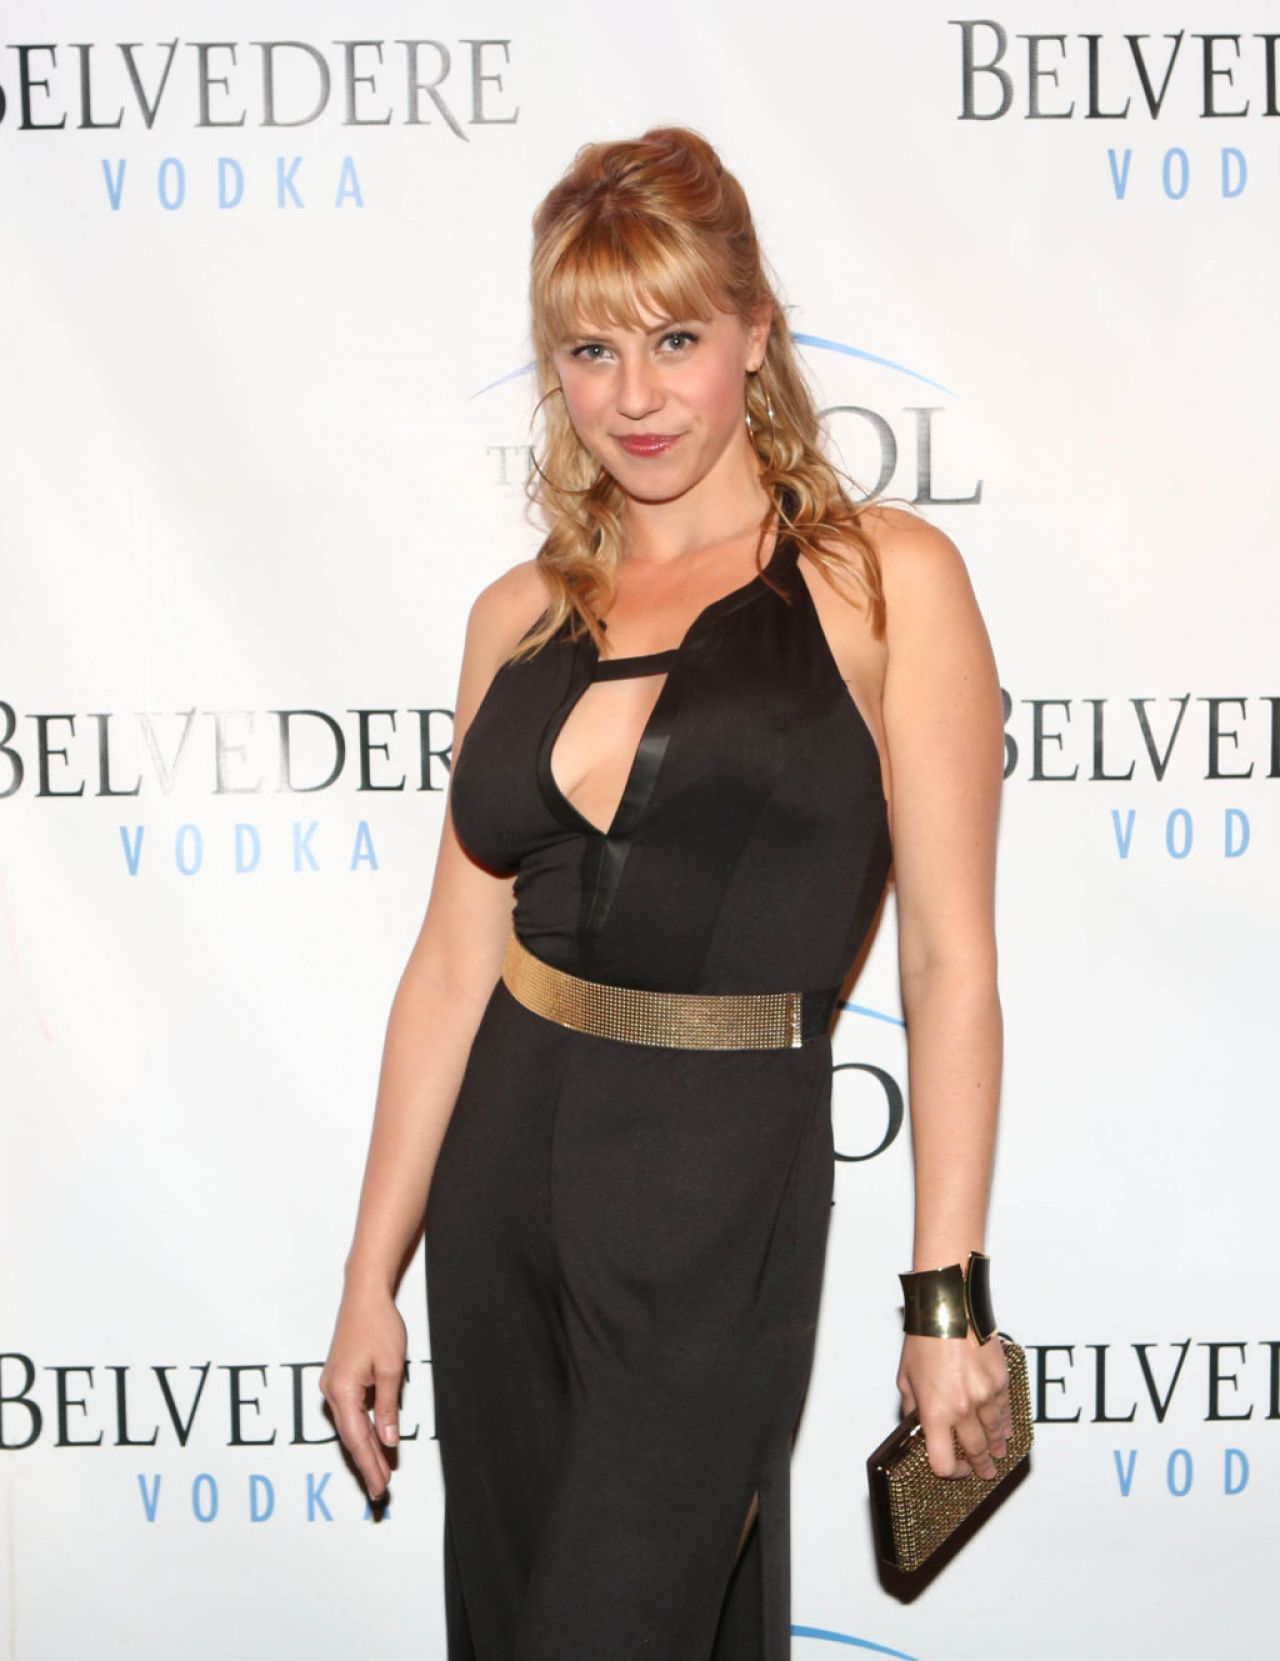 Jodie Sweetin Red CArpet Photos - The Pool After Dark in Atlantic City